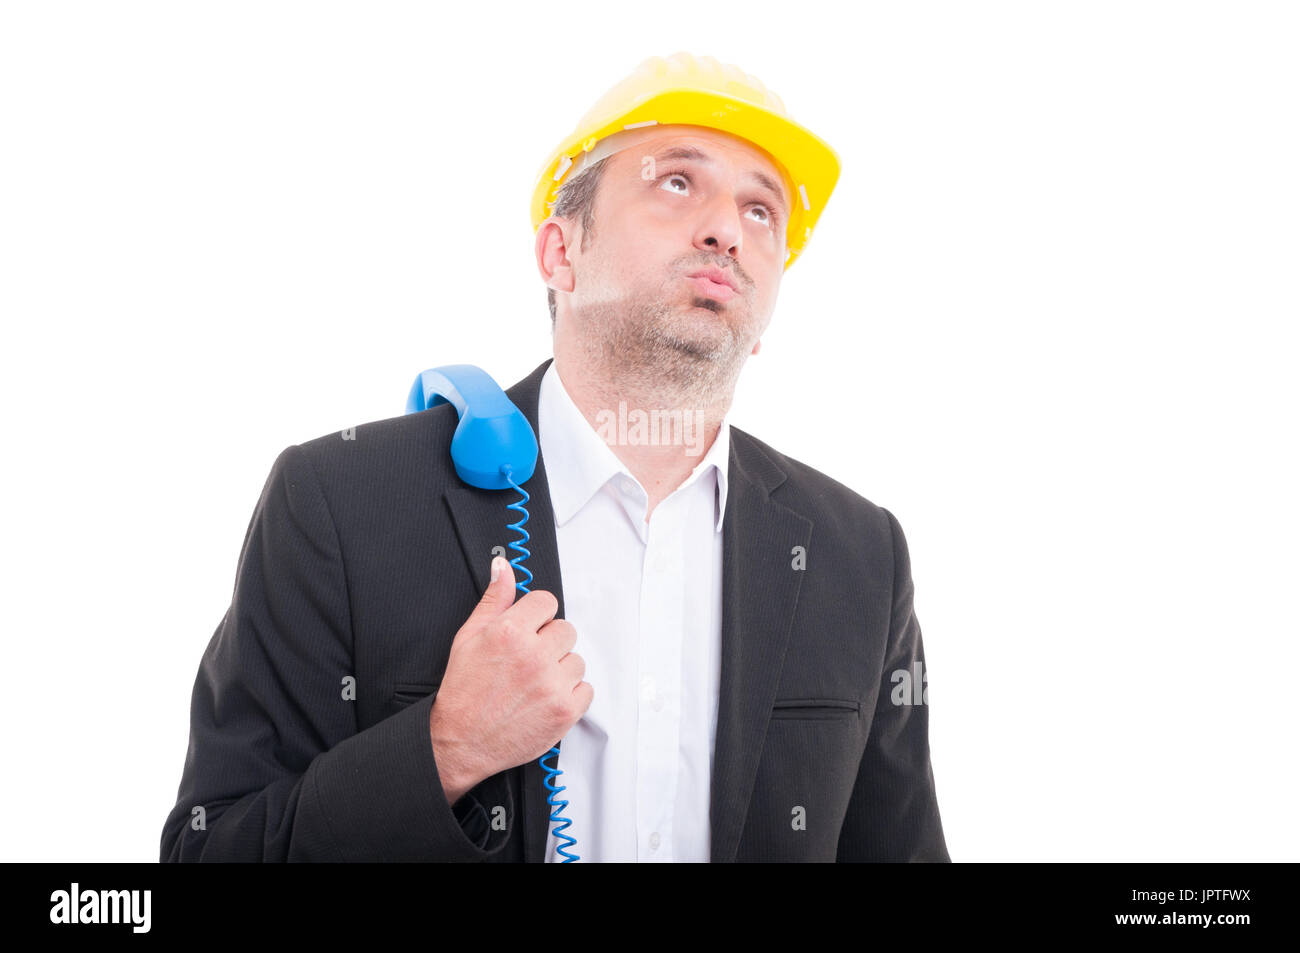 a1599f64e Architect looking bored with telephone receiver on shoulder wearing yellow  hardhat isolated on white background -